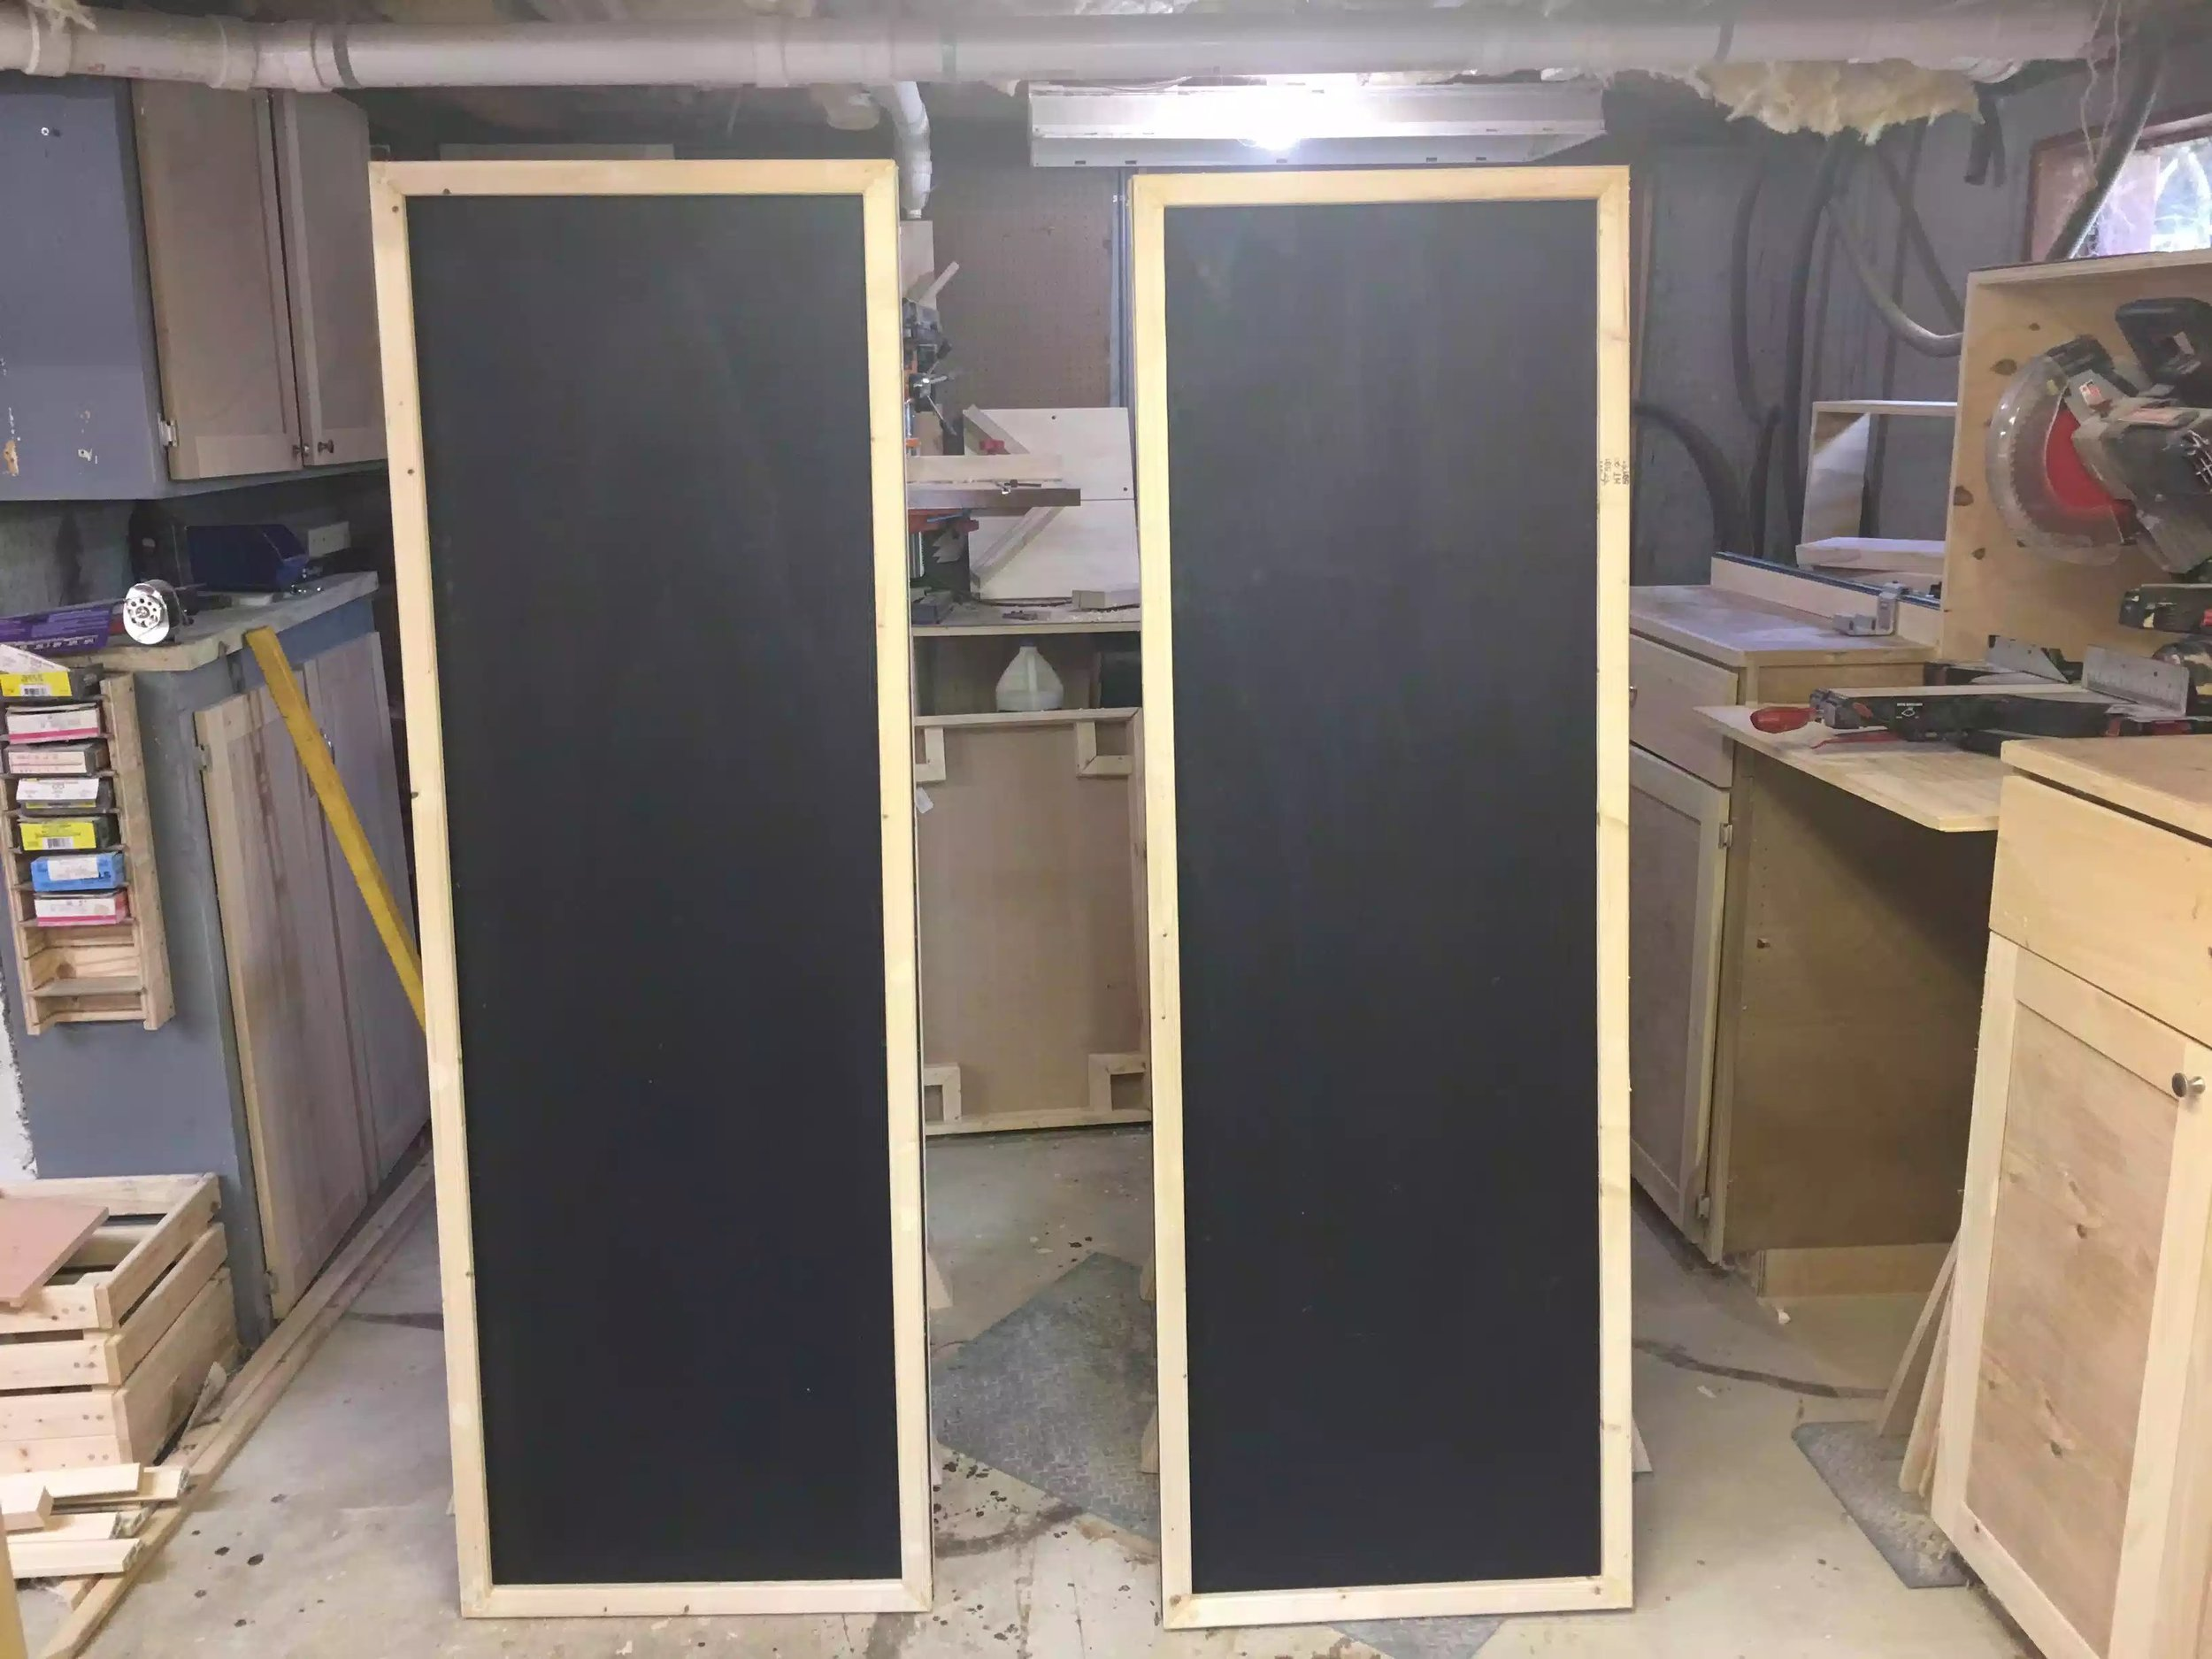 Here is the front side of the panels, still have alot of work to do but they are starting to take shape.